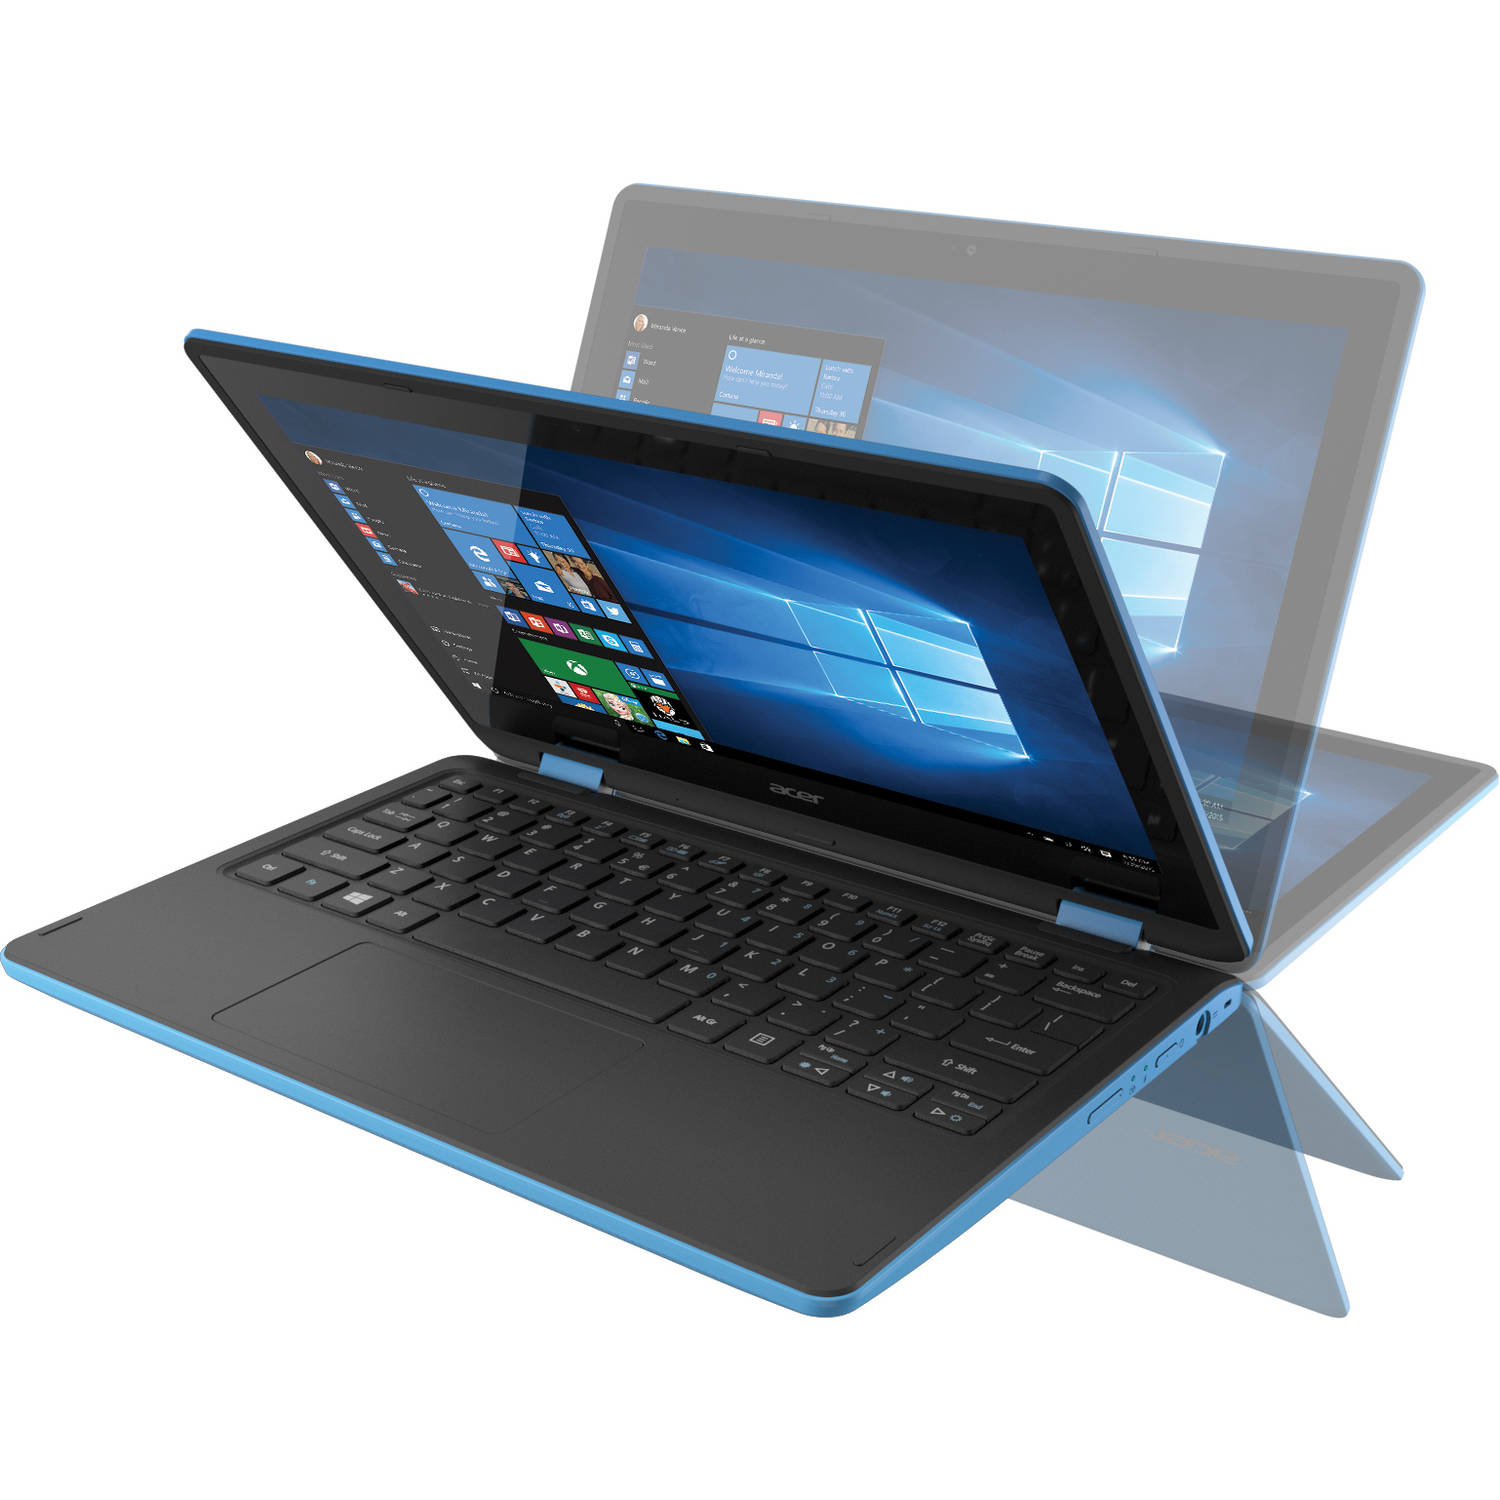 "Acer Sky Blue 11.6"" R11 R3-131T-C1YF touch screen 2-in-1 Convertible Laptop PC with Intel Celeron N3050 Processor, 2GB Memory, 32GB eMMC and Windows 10"